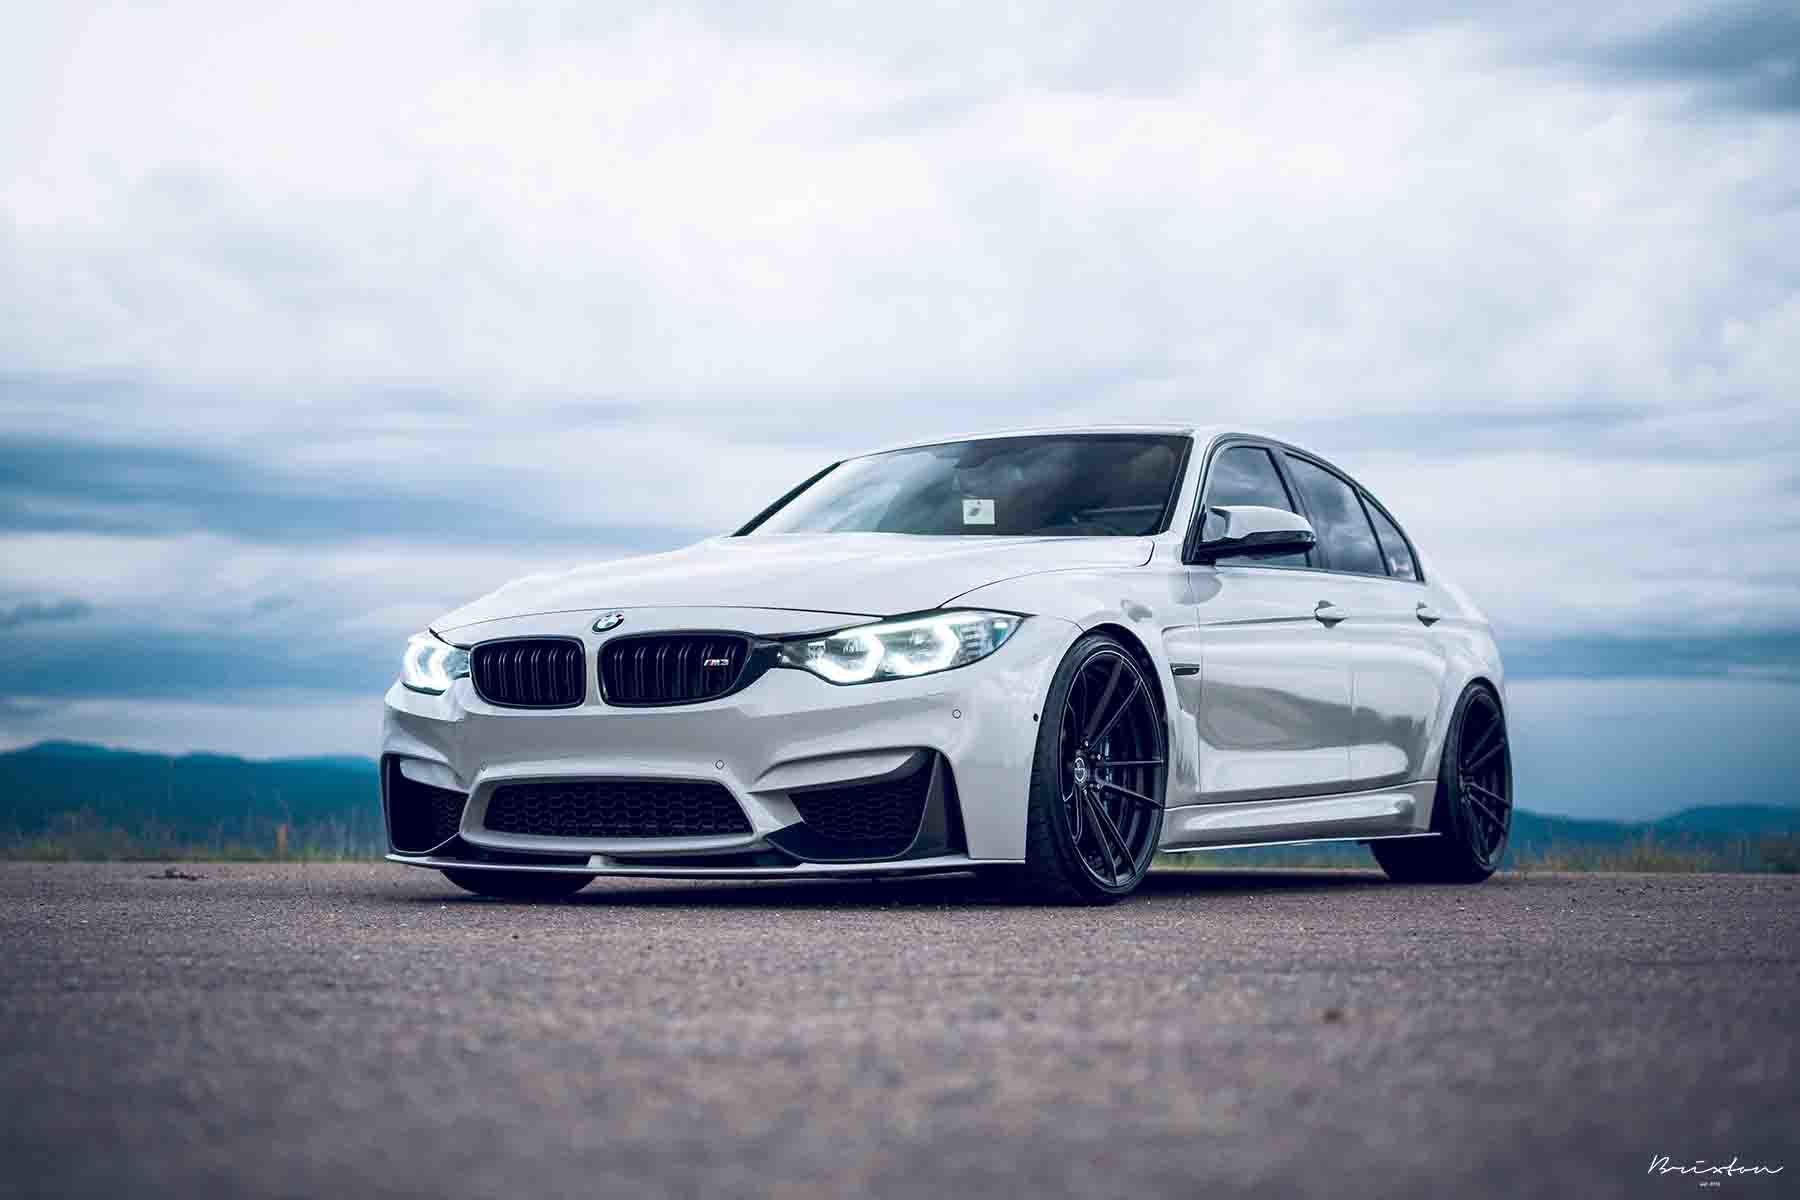 images-products-1-2174-232974462-bmw-f80-m3-brixton-forged-m51.jpg